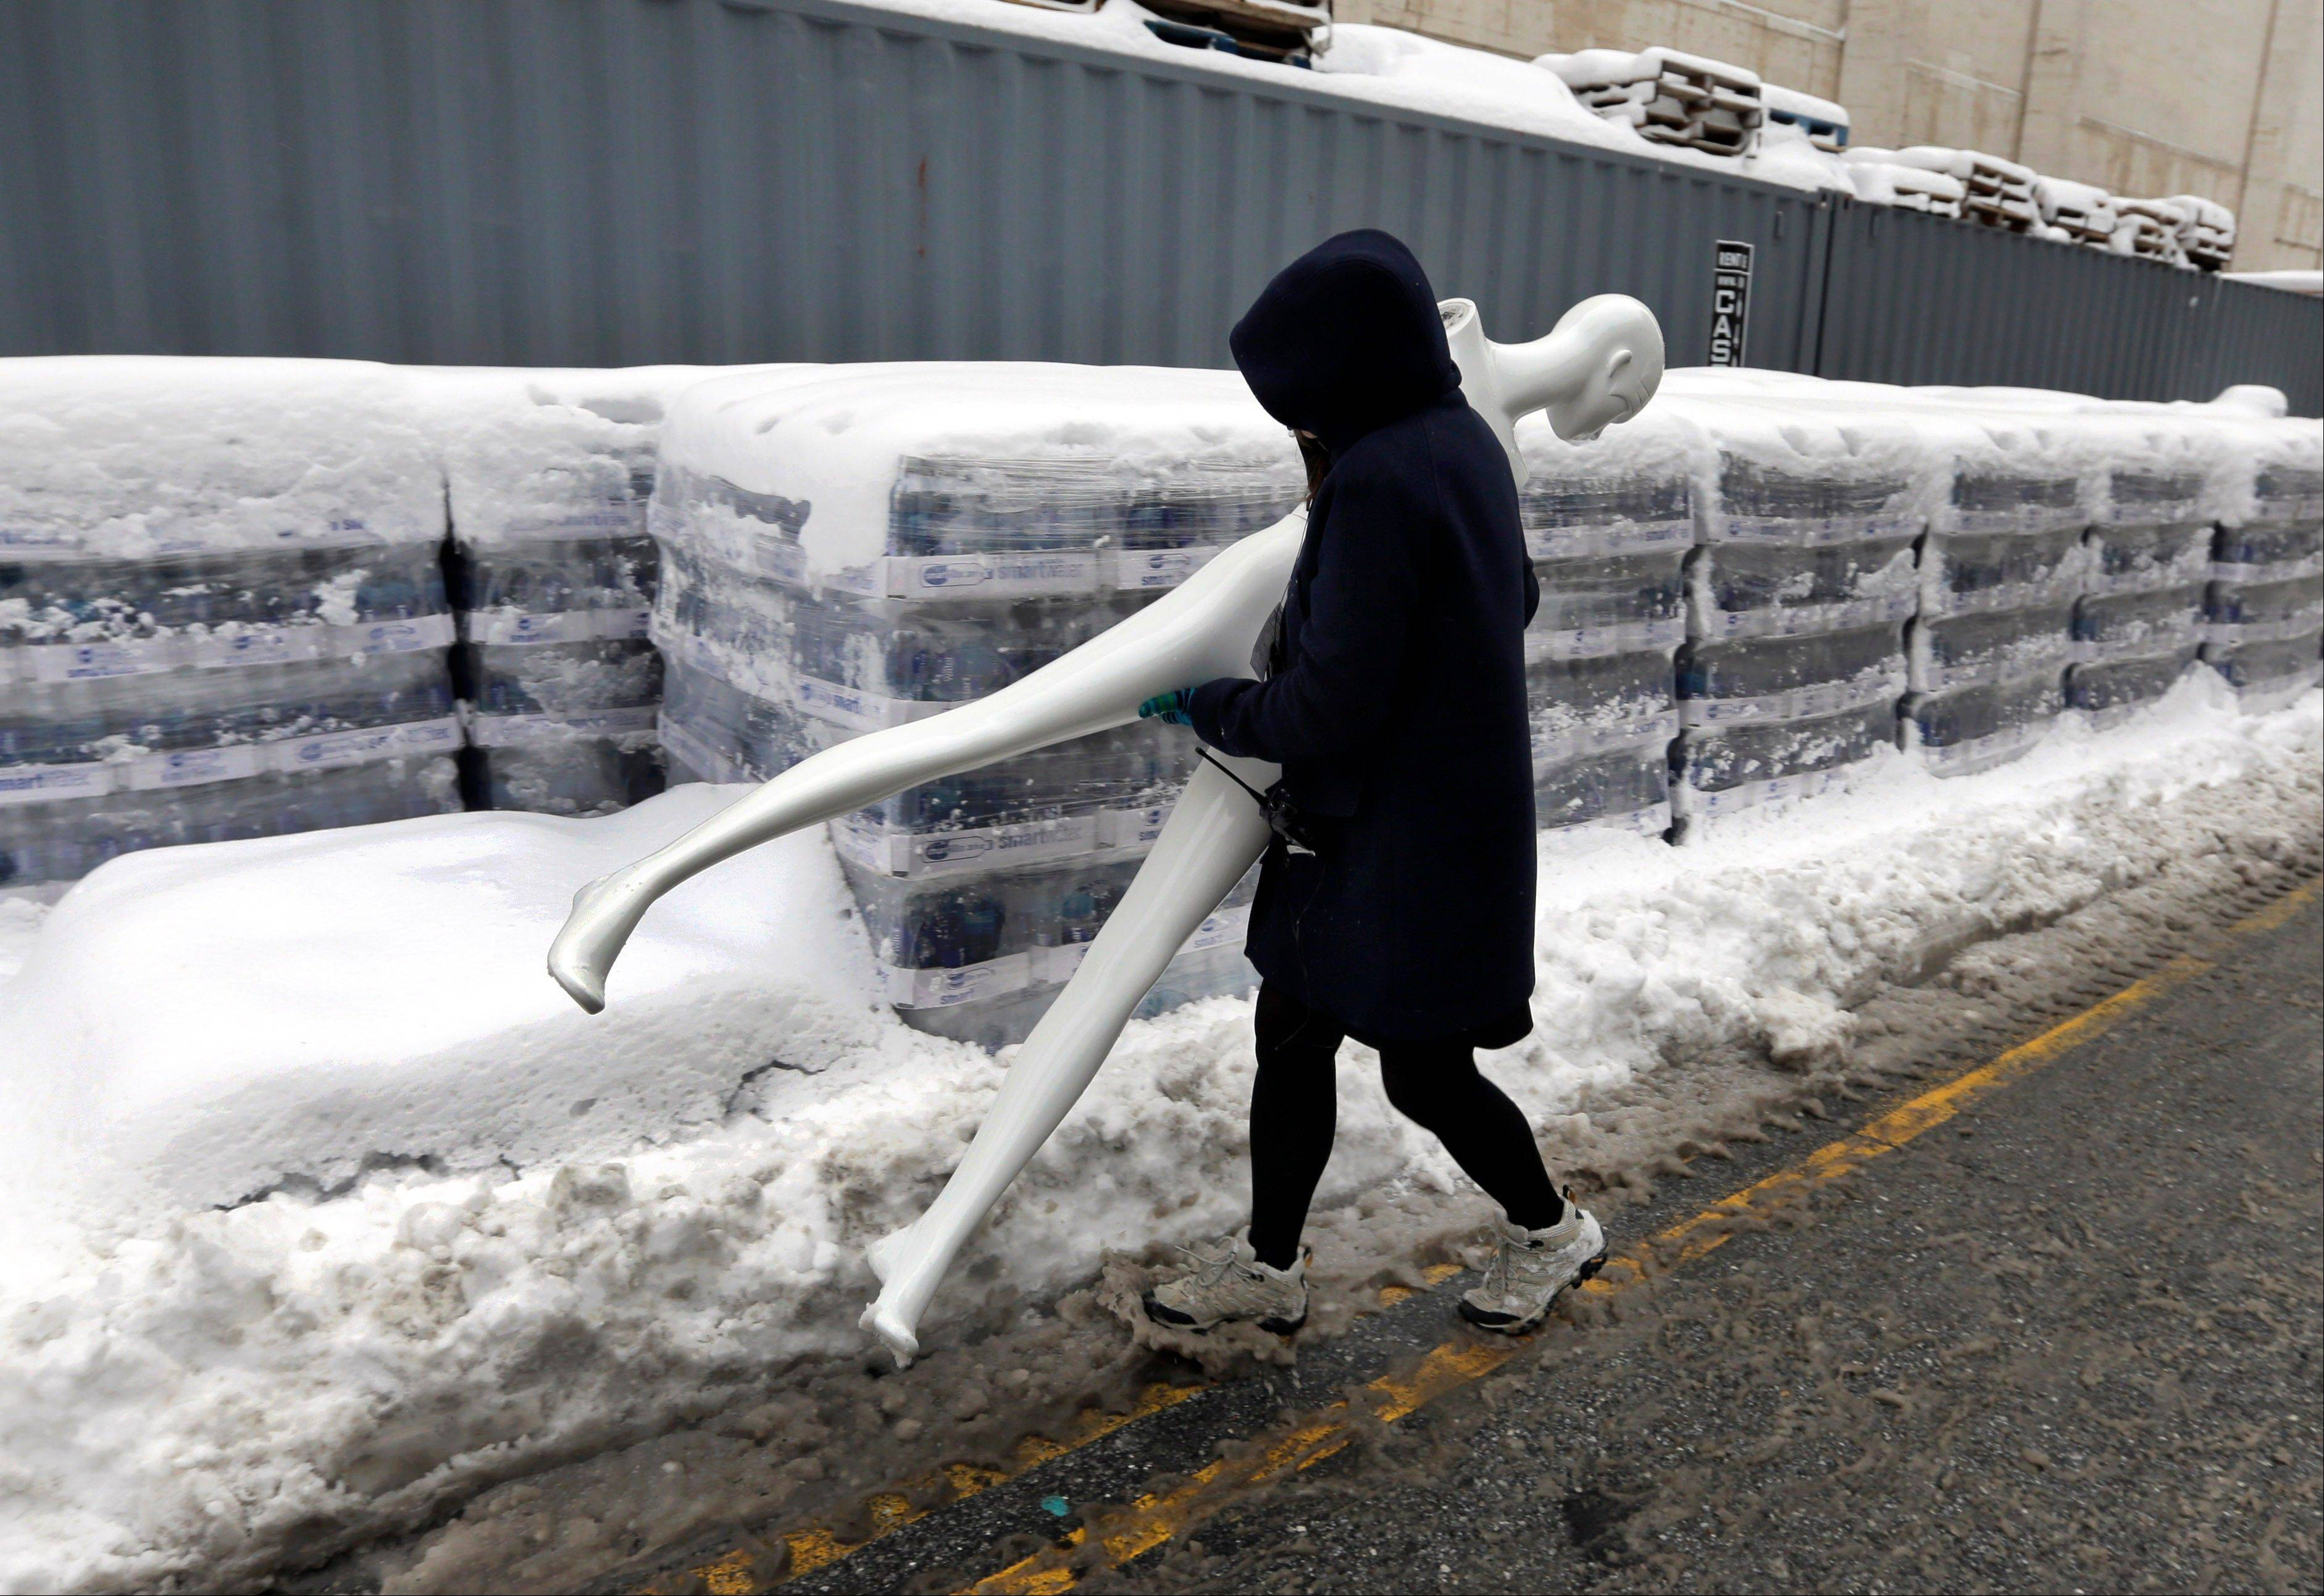 A worker carries a mannequin outside Lincoln Center, home of New York's Fashion Week shows, Saturday, Feb. 9, 2013. In New York City, the snow total in Central Park was 8.1 inches by 3 a.m.